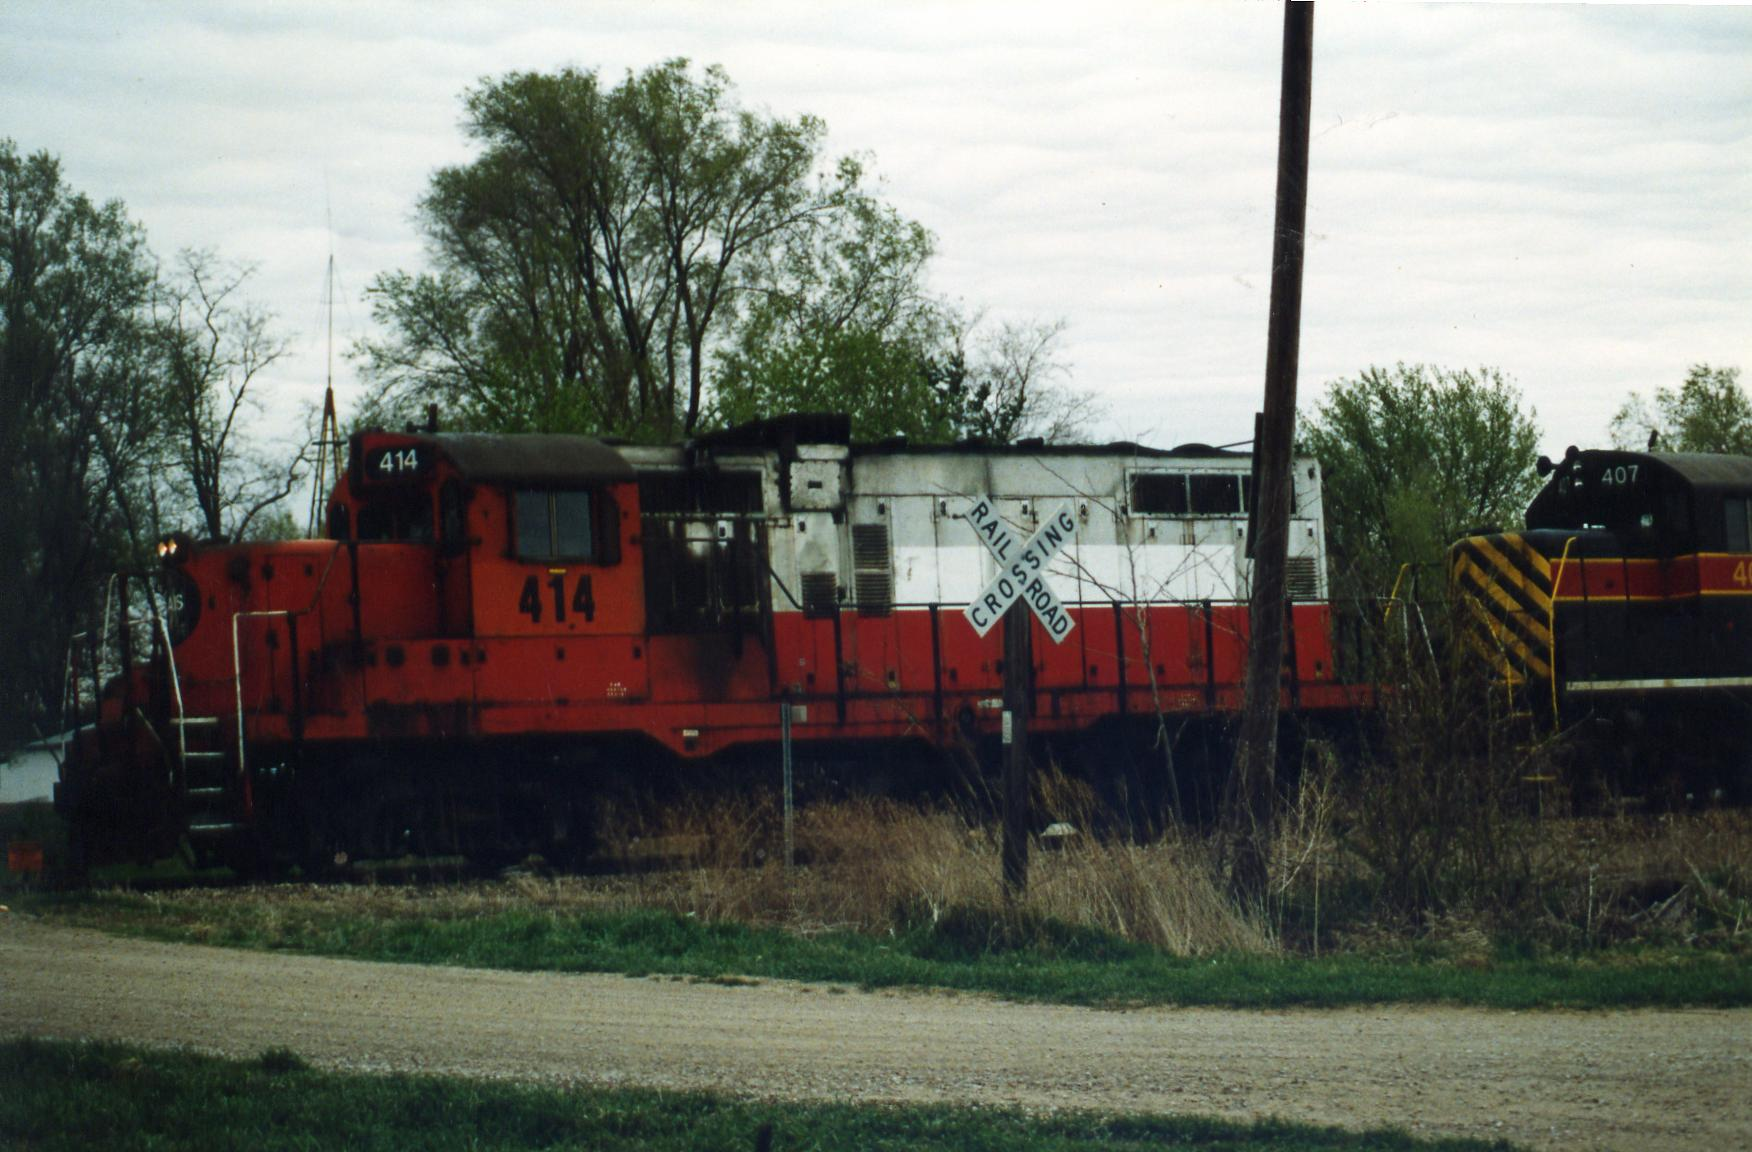 The power was parked by the east crossing in Moscow, mp211.  Consist was 414/407/466/473.